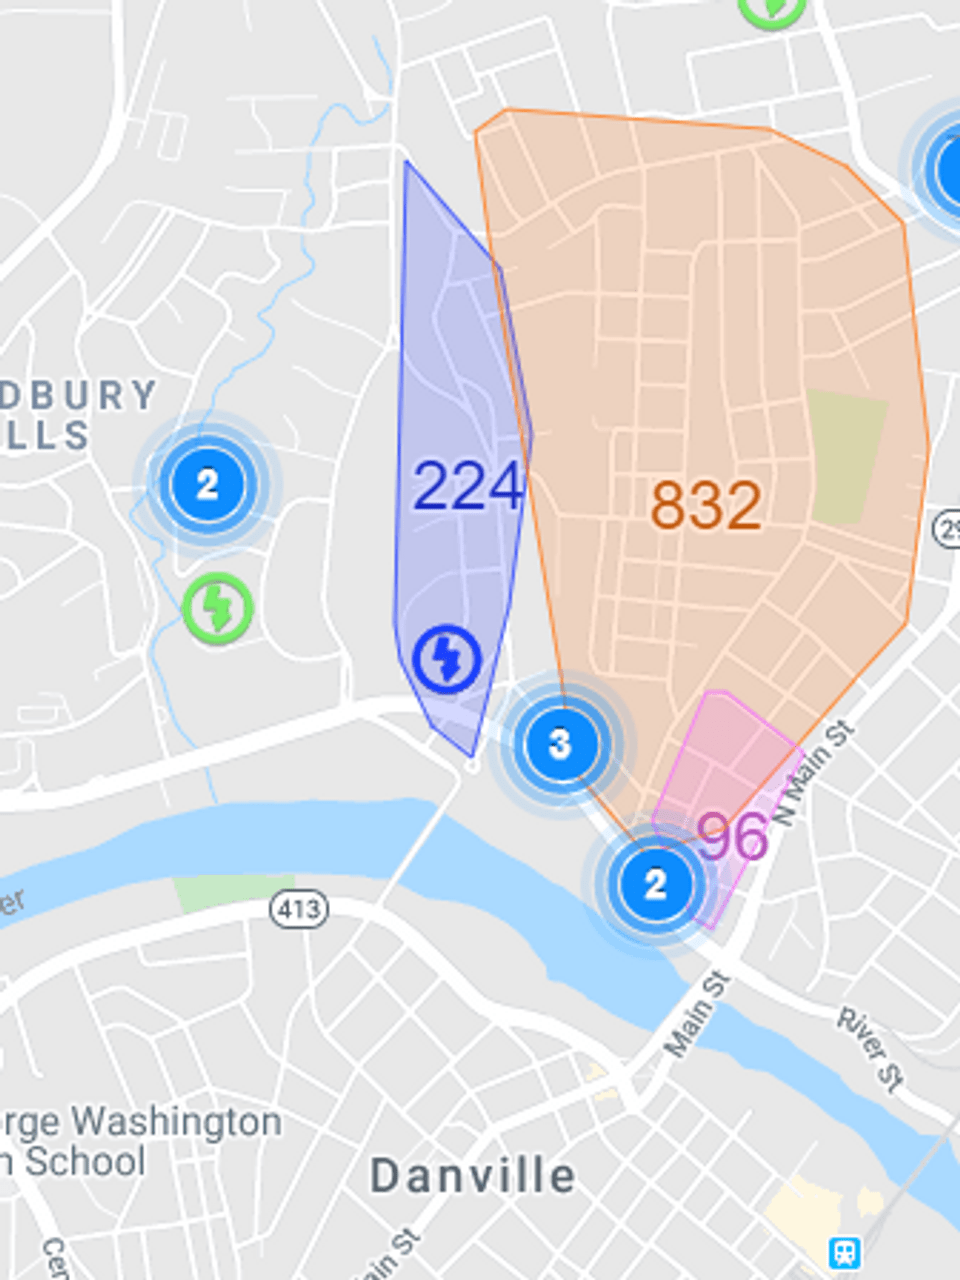 Rge Power Outages Map : power, outages, Power, Restored, 1,300, Danville, Following, Storm